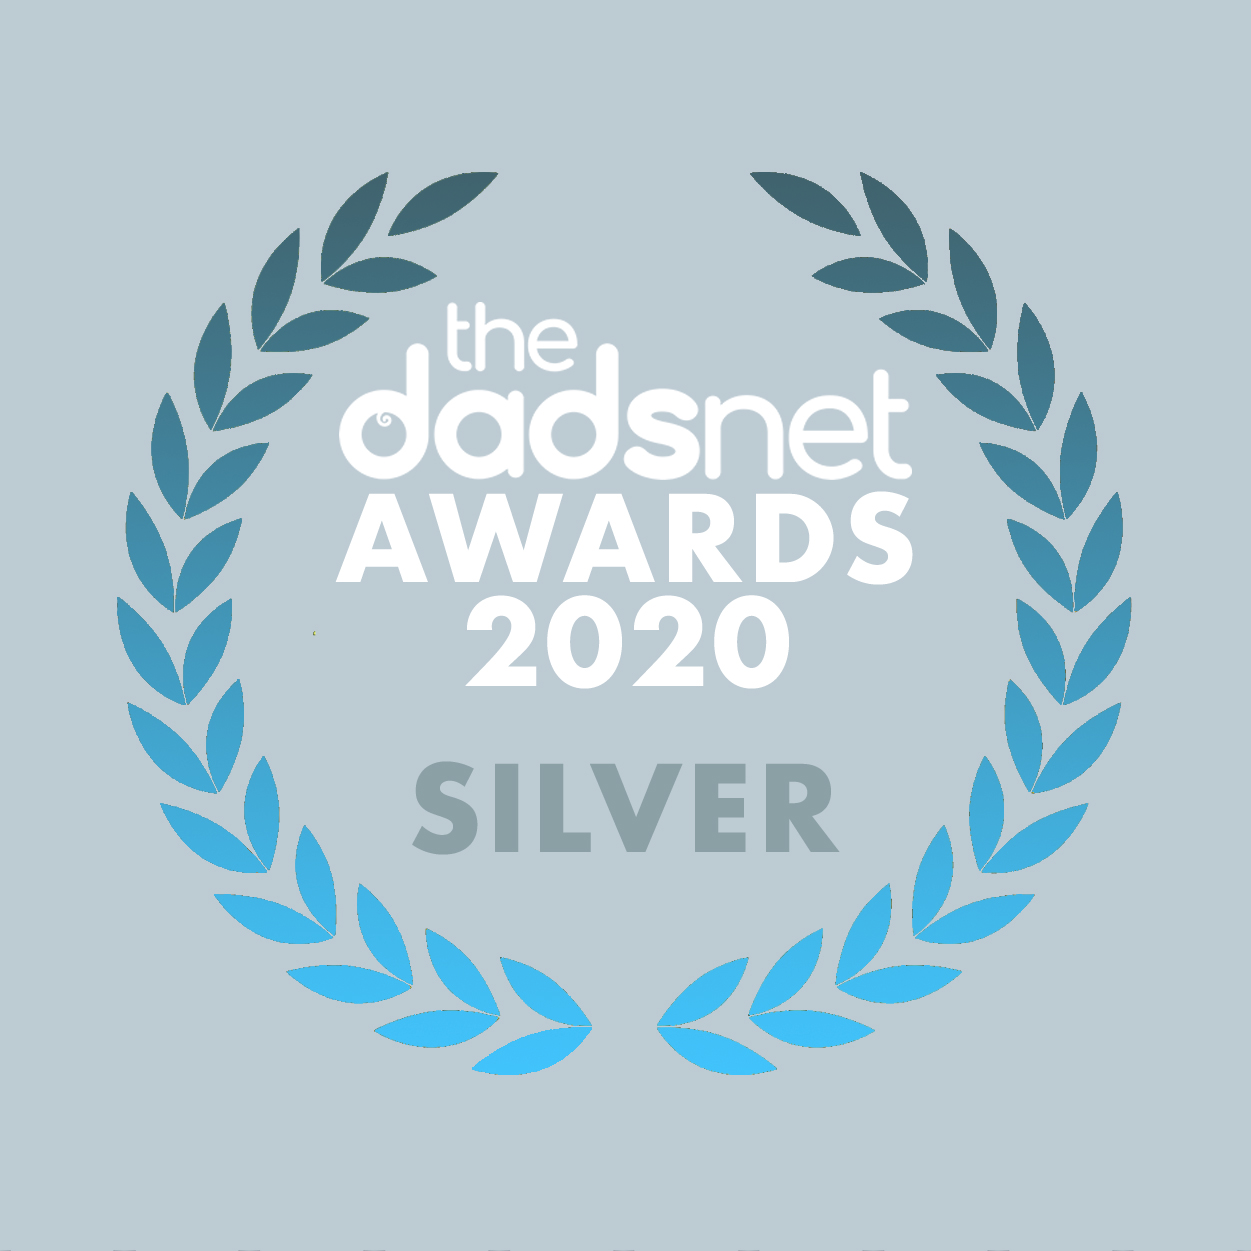 Dadsnet Product Awards 2020 - Winners Revealed, Dadsnet Product20Awards Silver v01%, daily-dad%